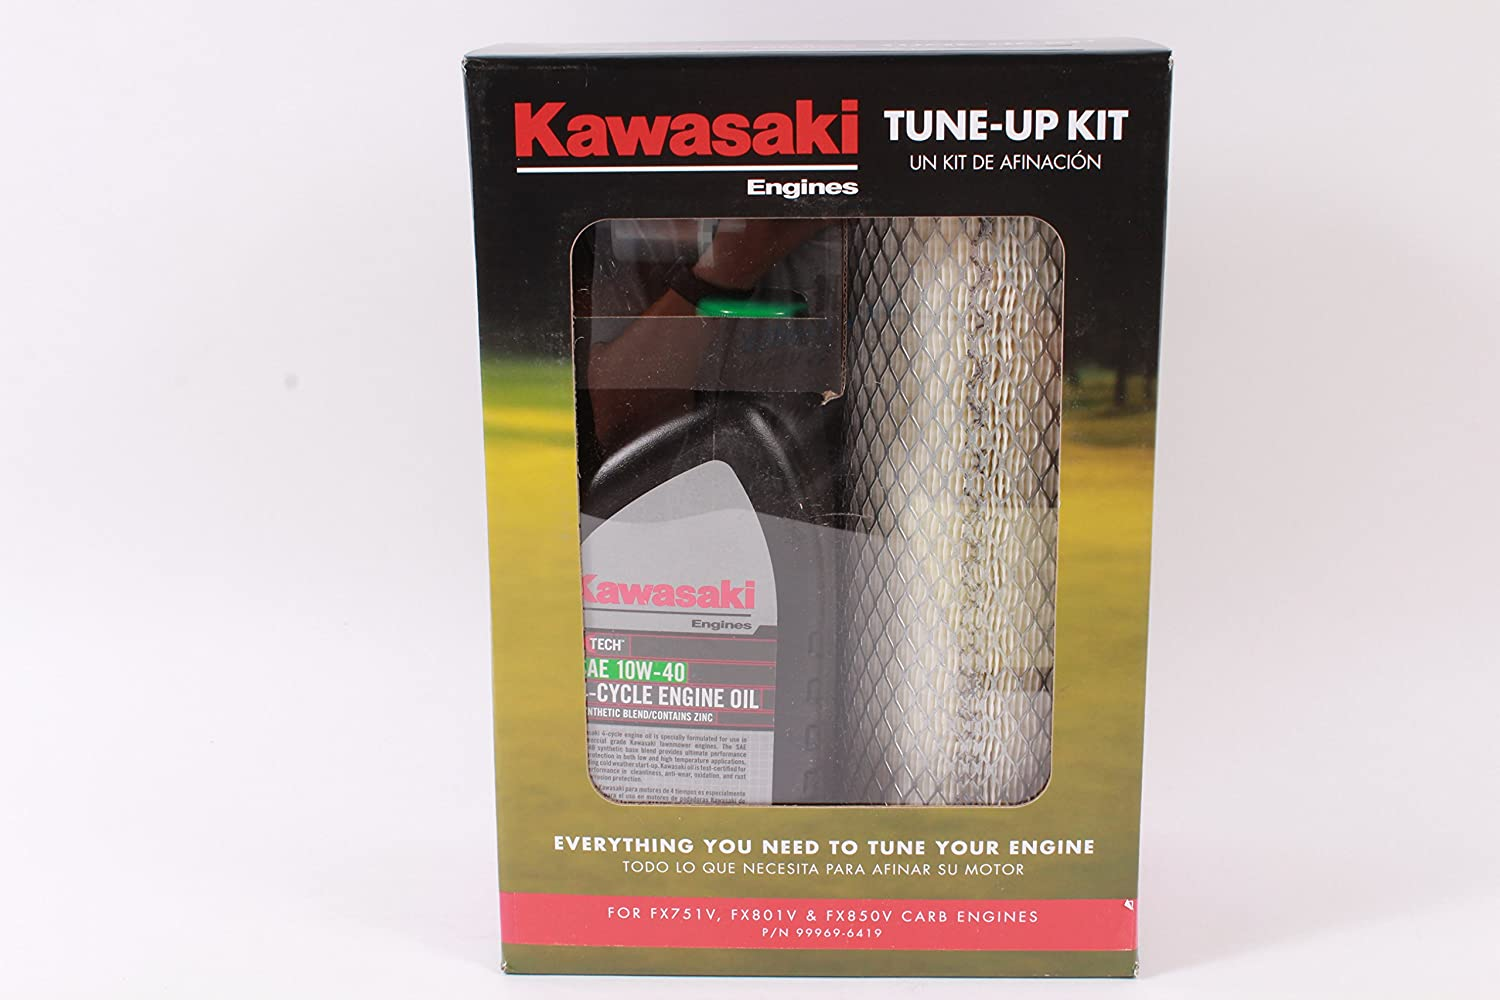 Amazon.com : Kawasaki Genuine 99969-6419 Tune Up Kit Fits FX751V FX801V FX850V Carb Engines : Garden & Outdoor